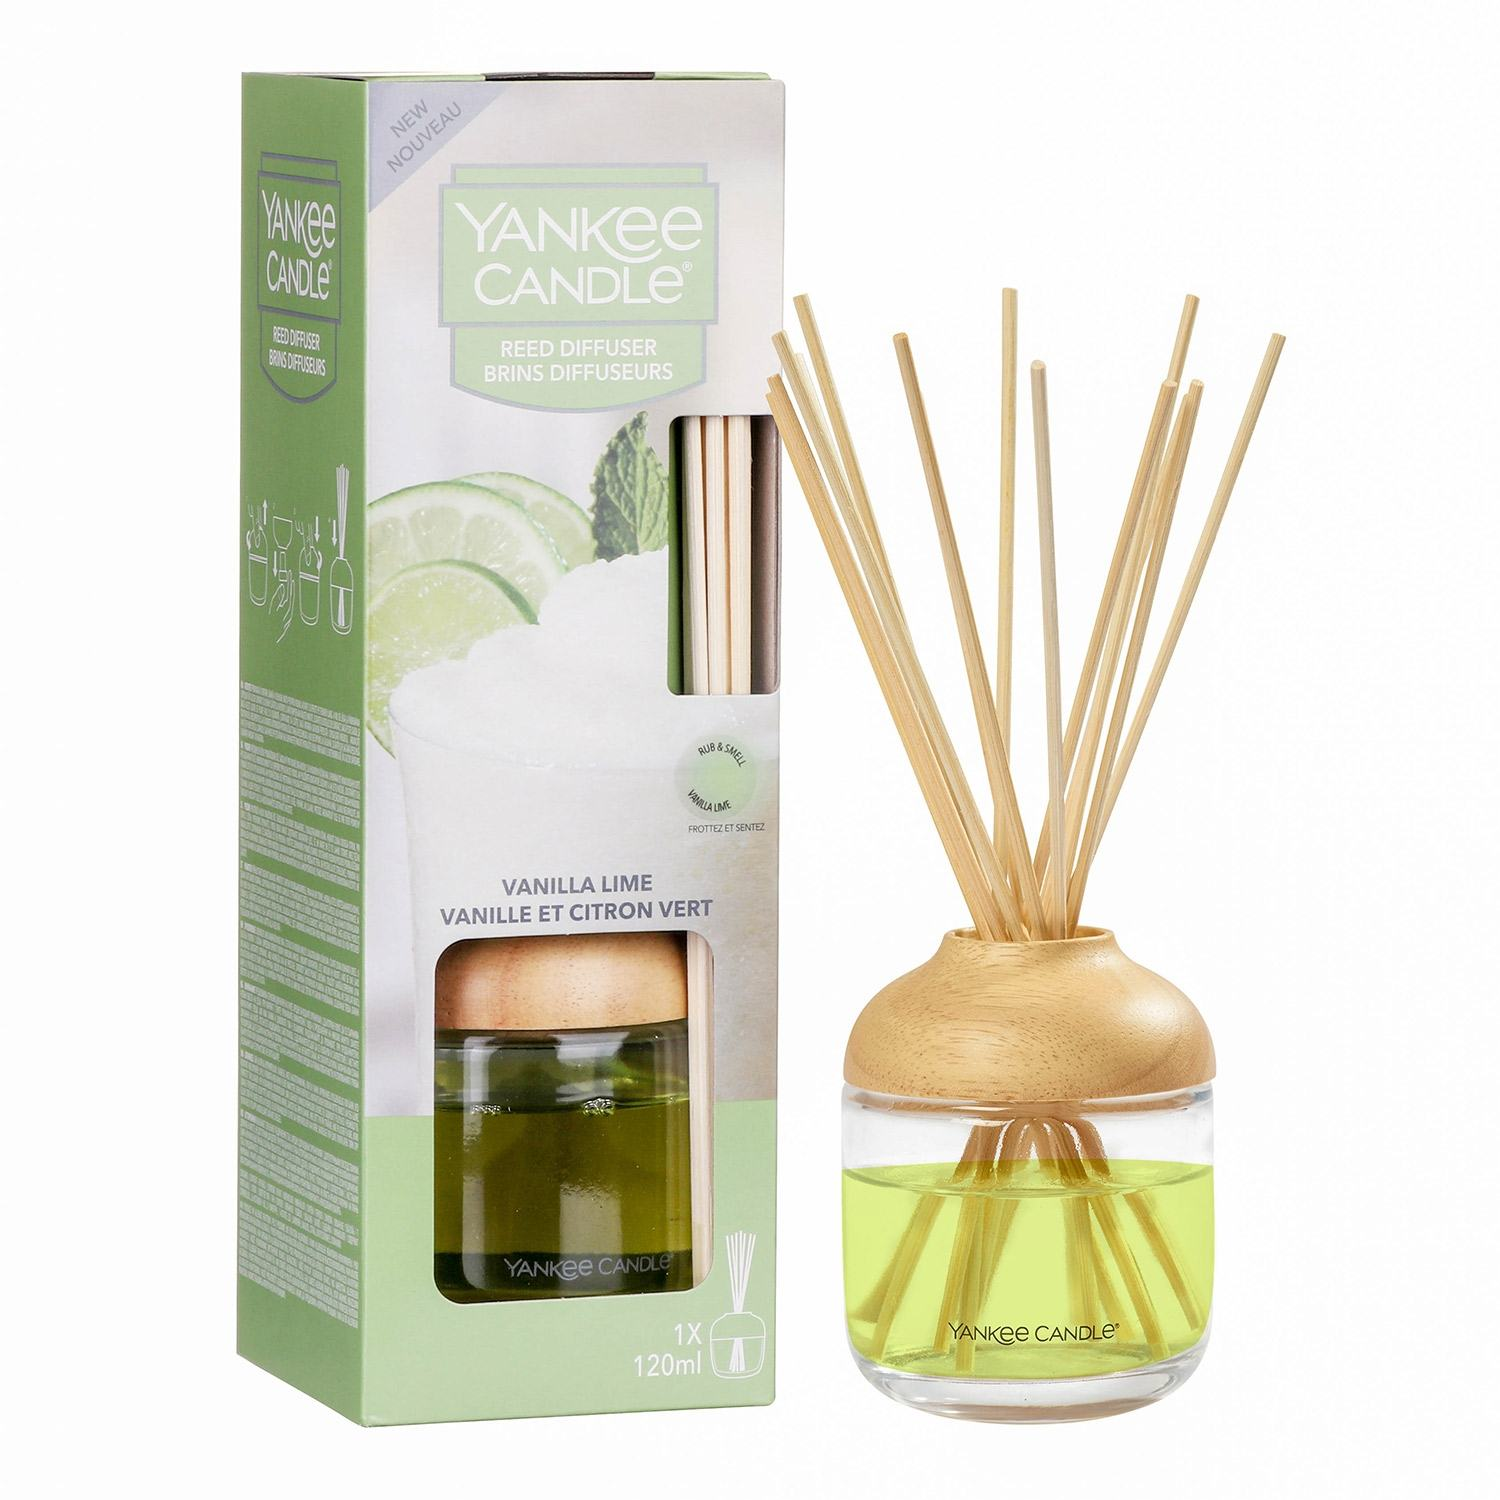 Yankee Candle Vanilla Lime Reed Diffuser Temptation Gifts